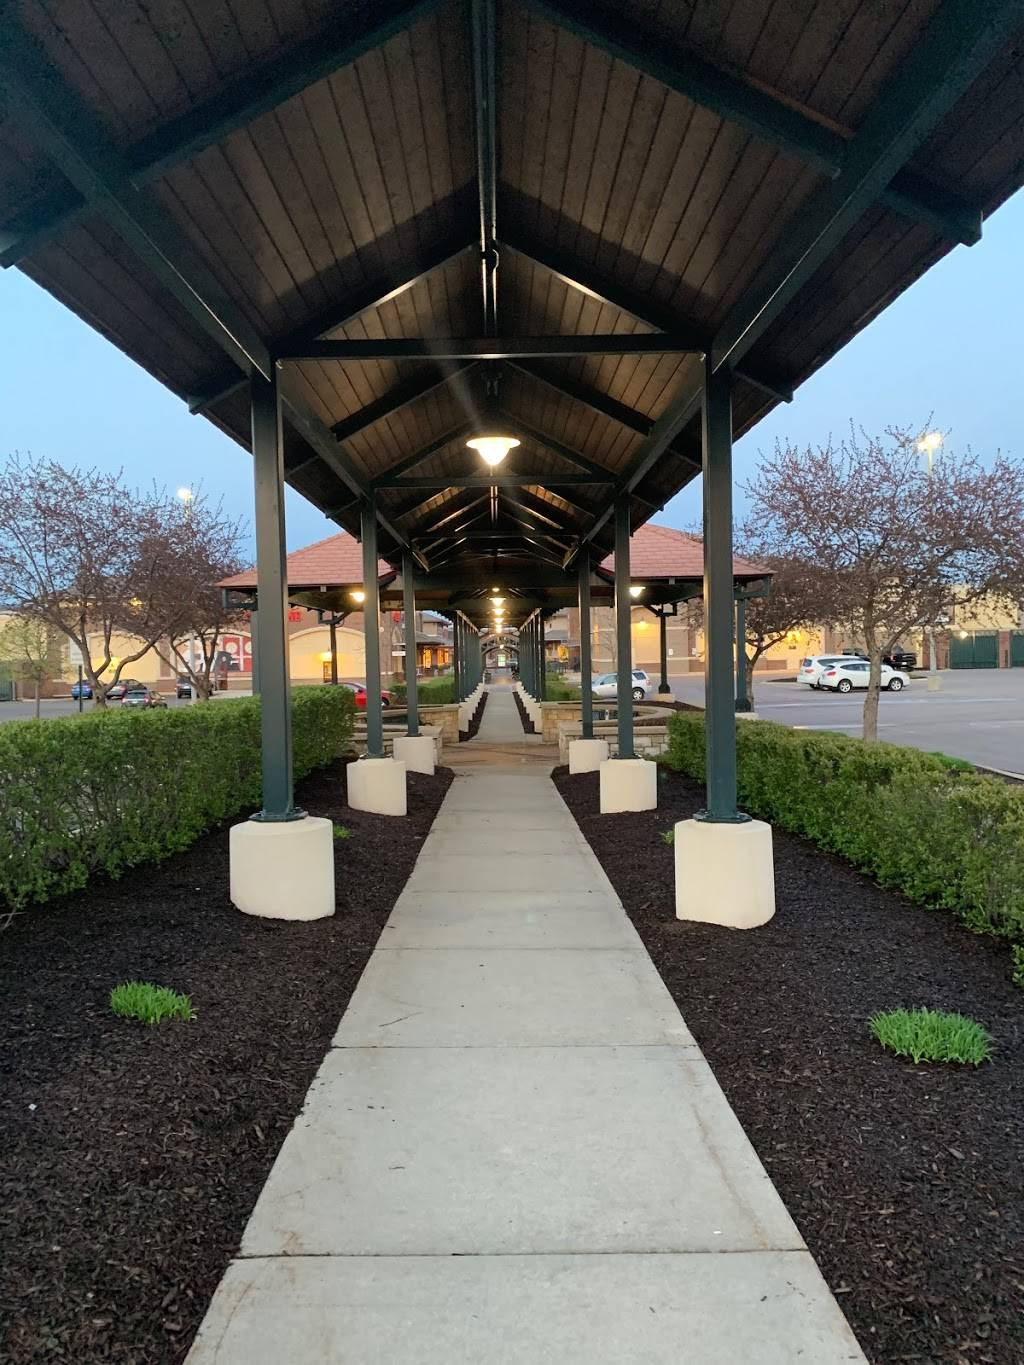 Greenway Station | shopping mall | 1650 Deming Way suite 106, Middleton, WI 53562, USA | 6088249111 OR +1 608-824-9111